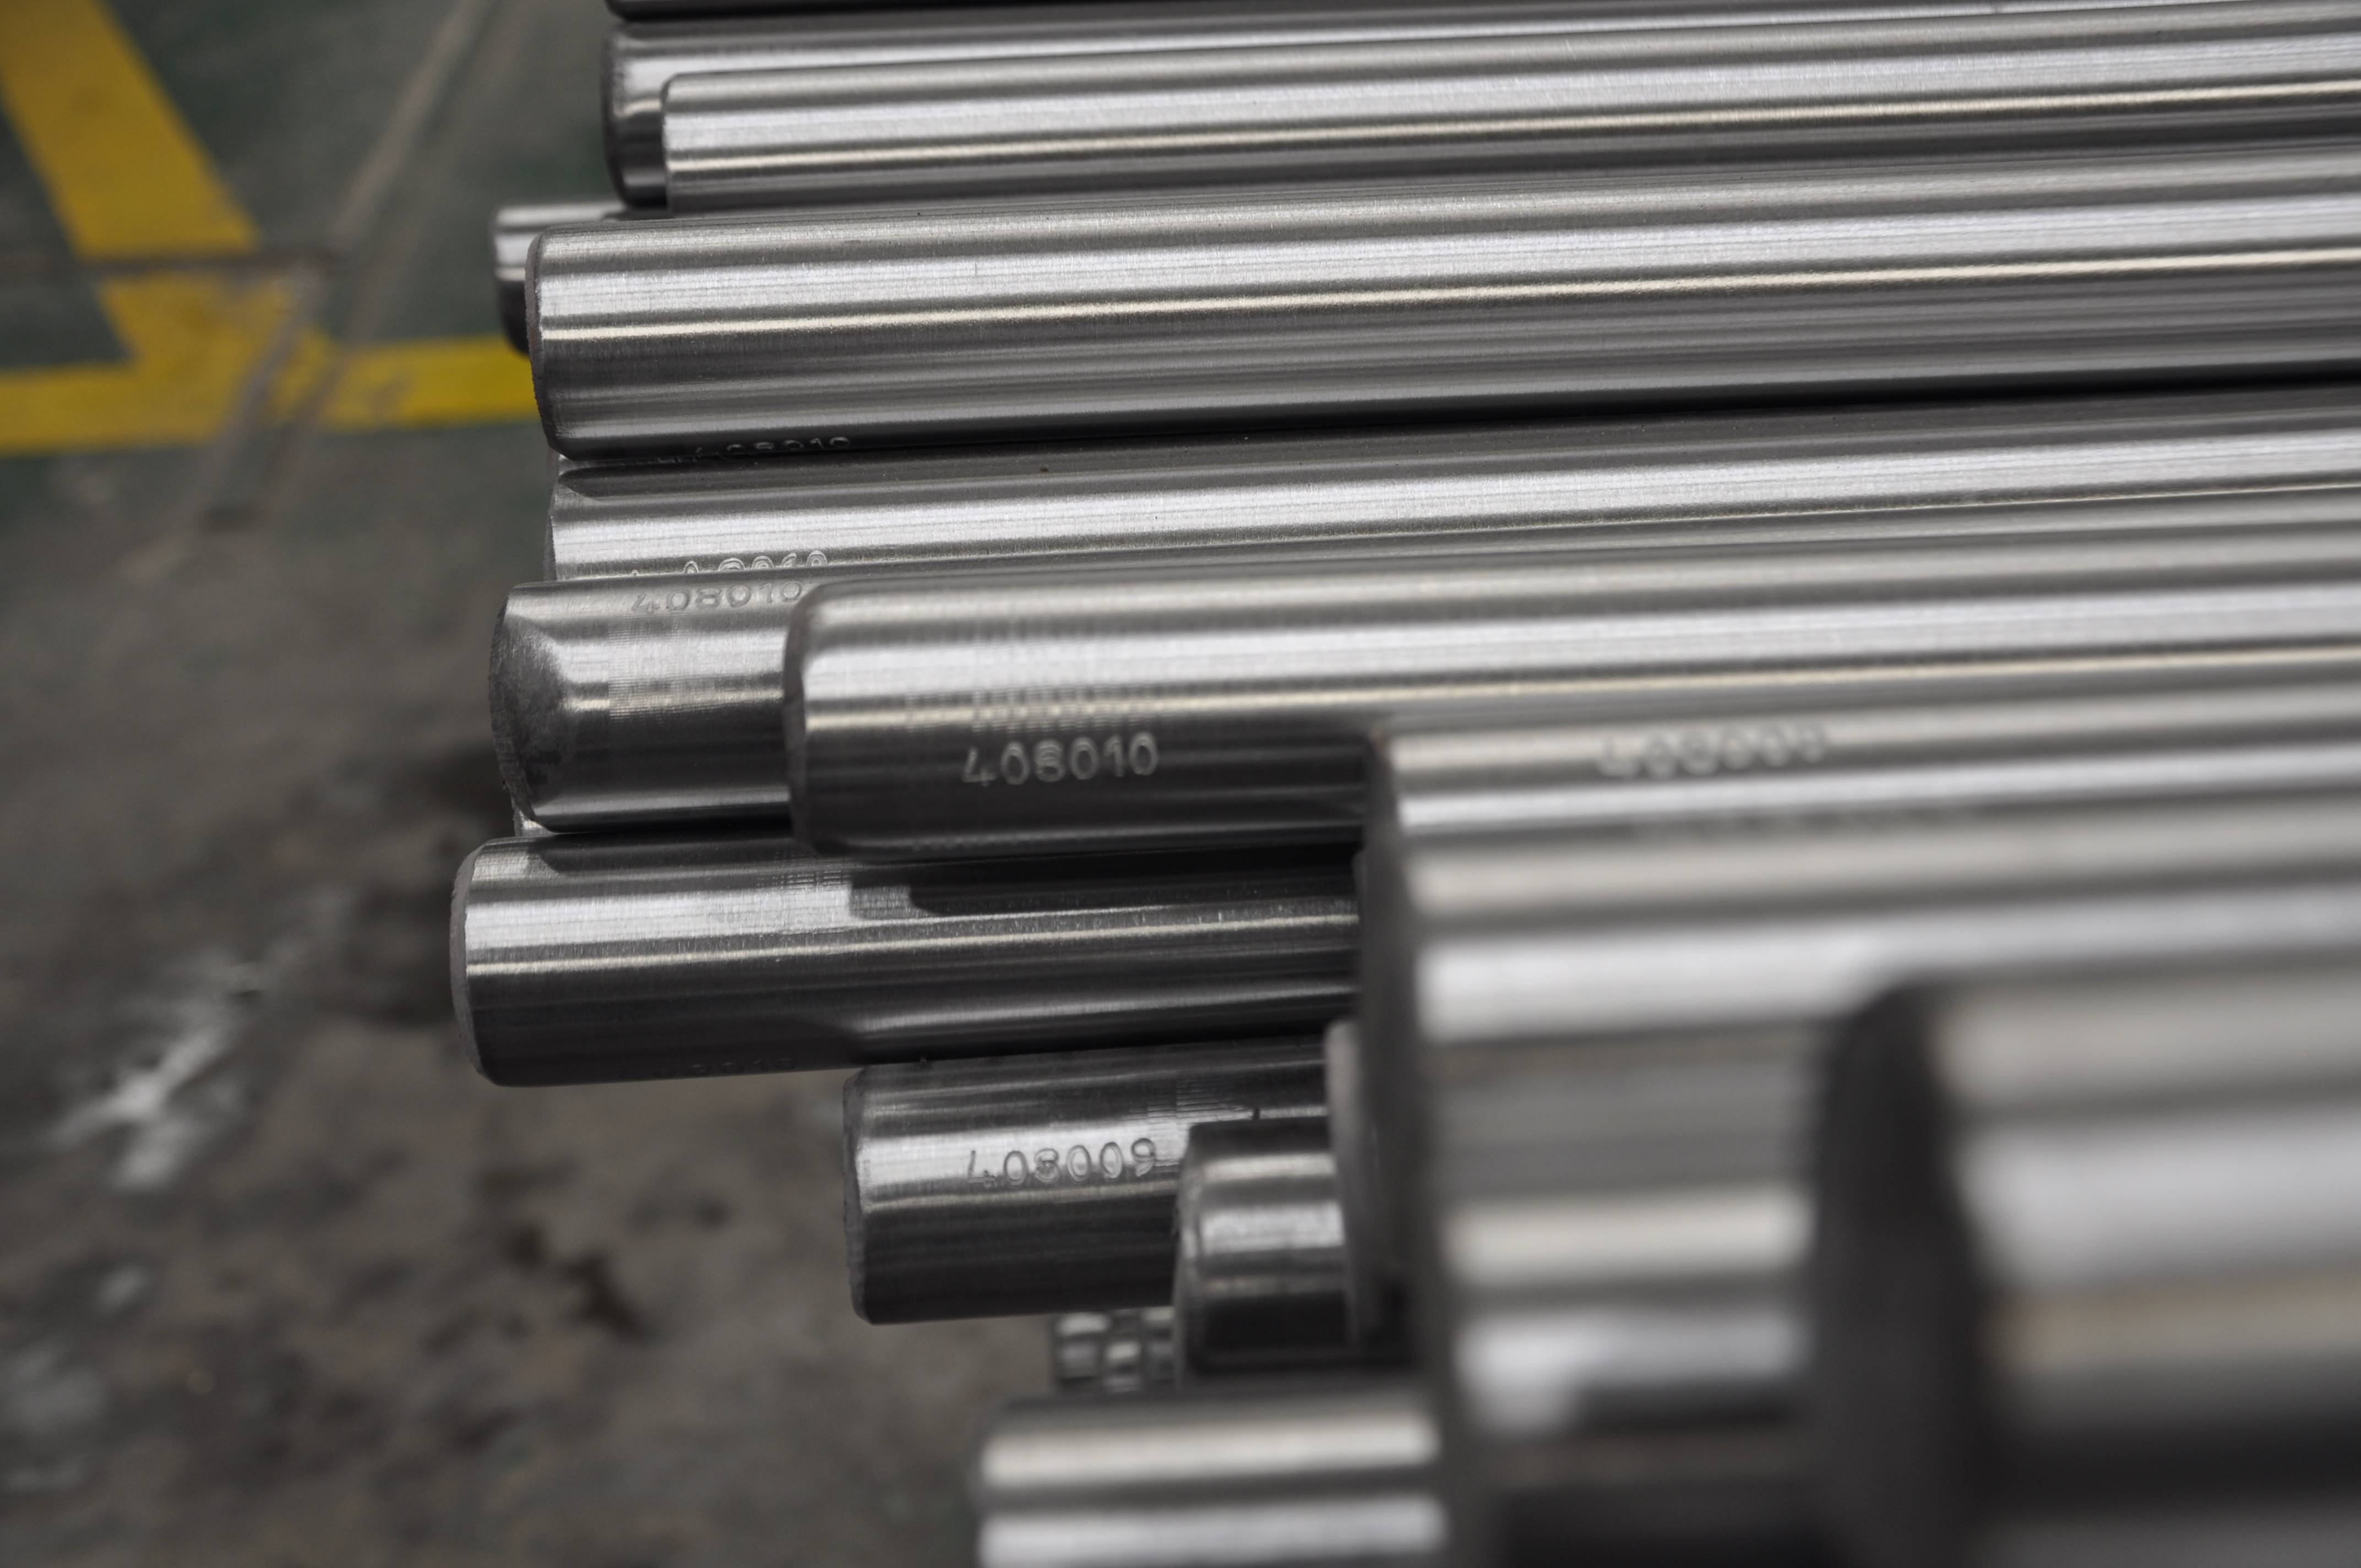 polish bright round bar, polished stainless steel round bar for exporting, not stainless